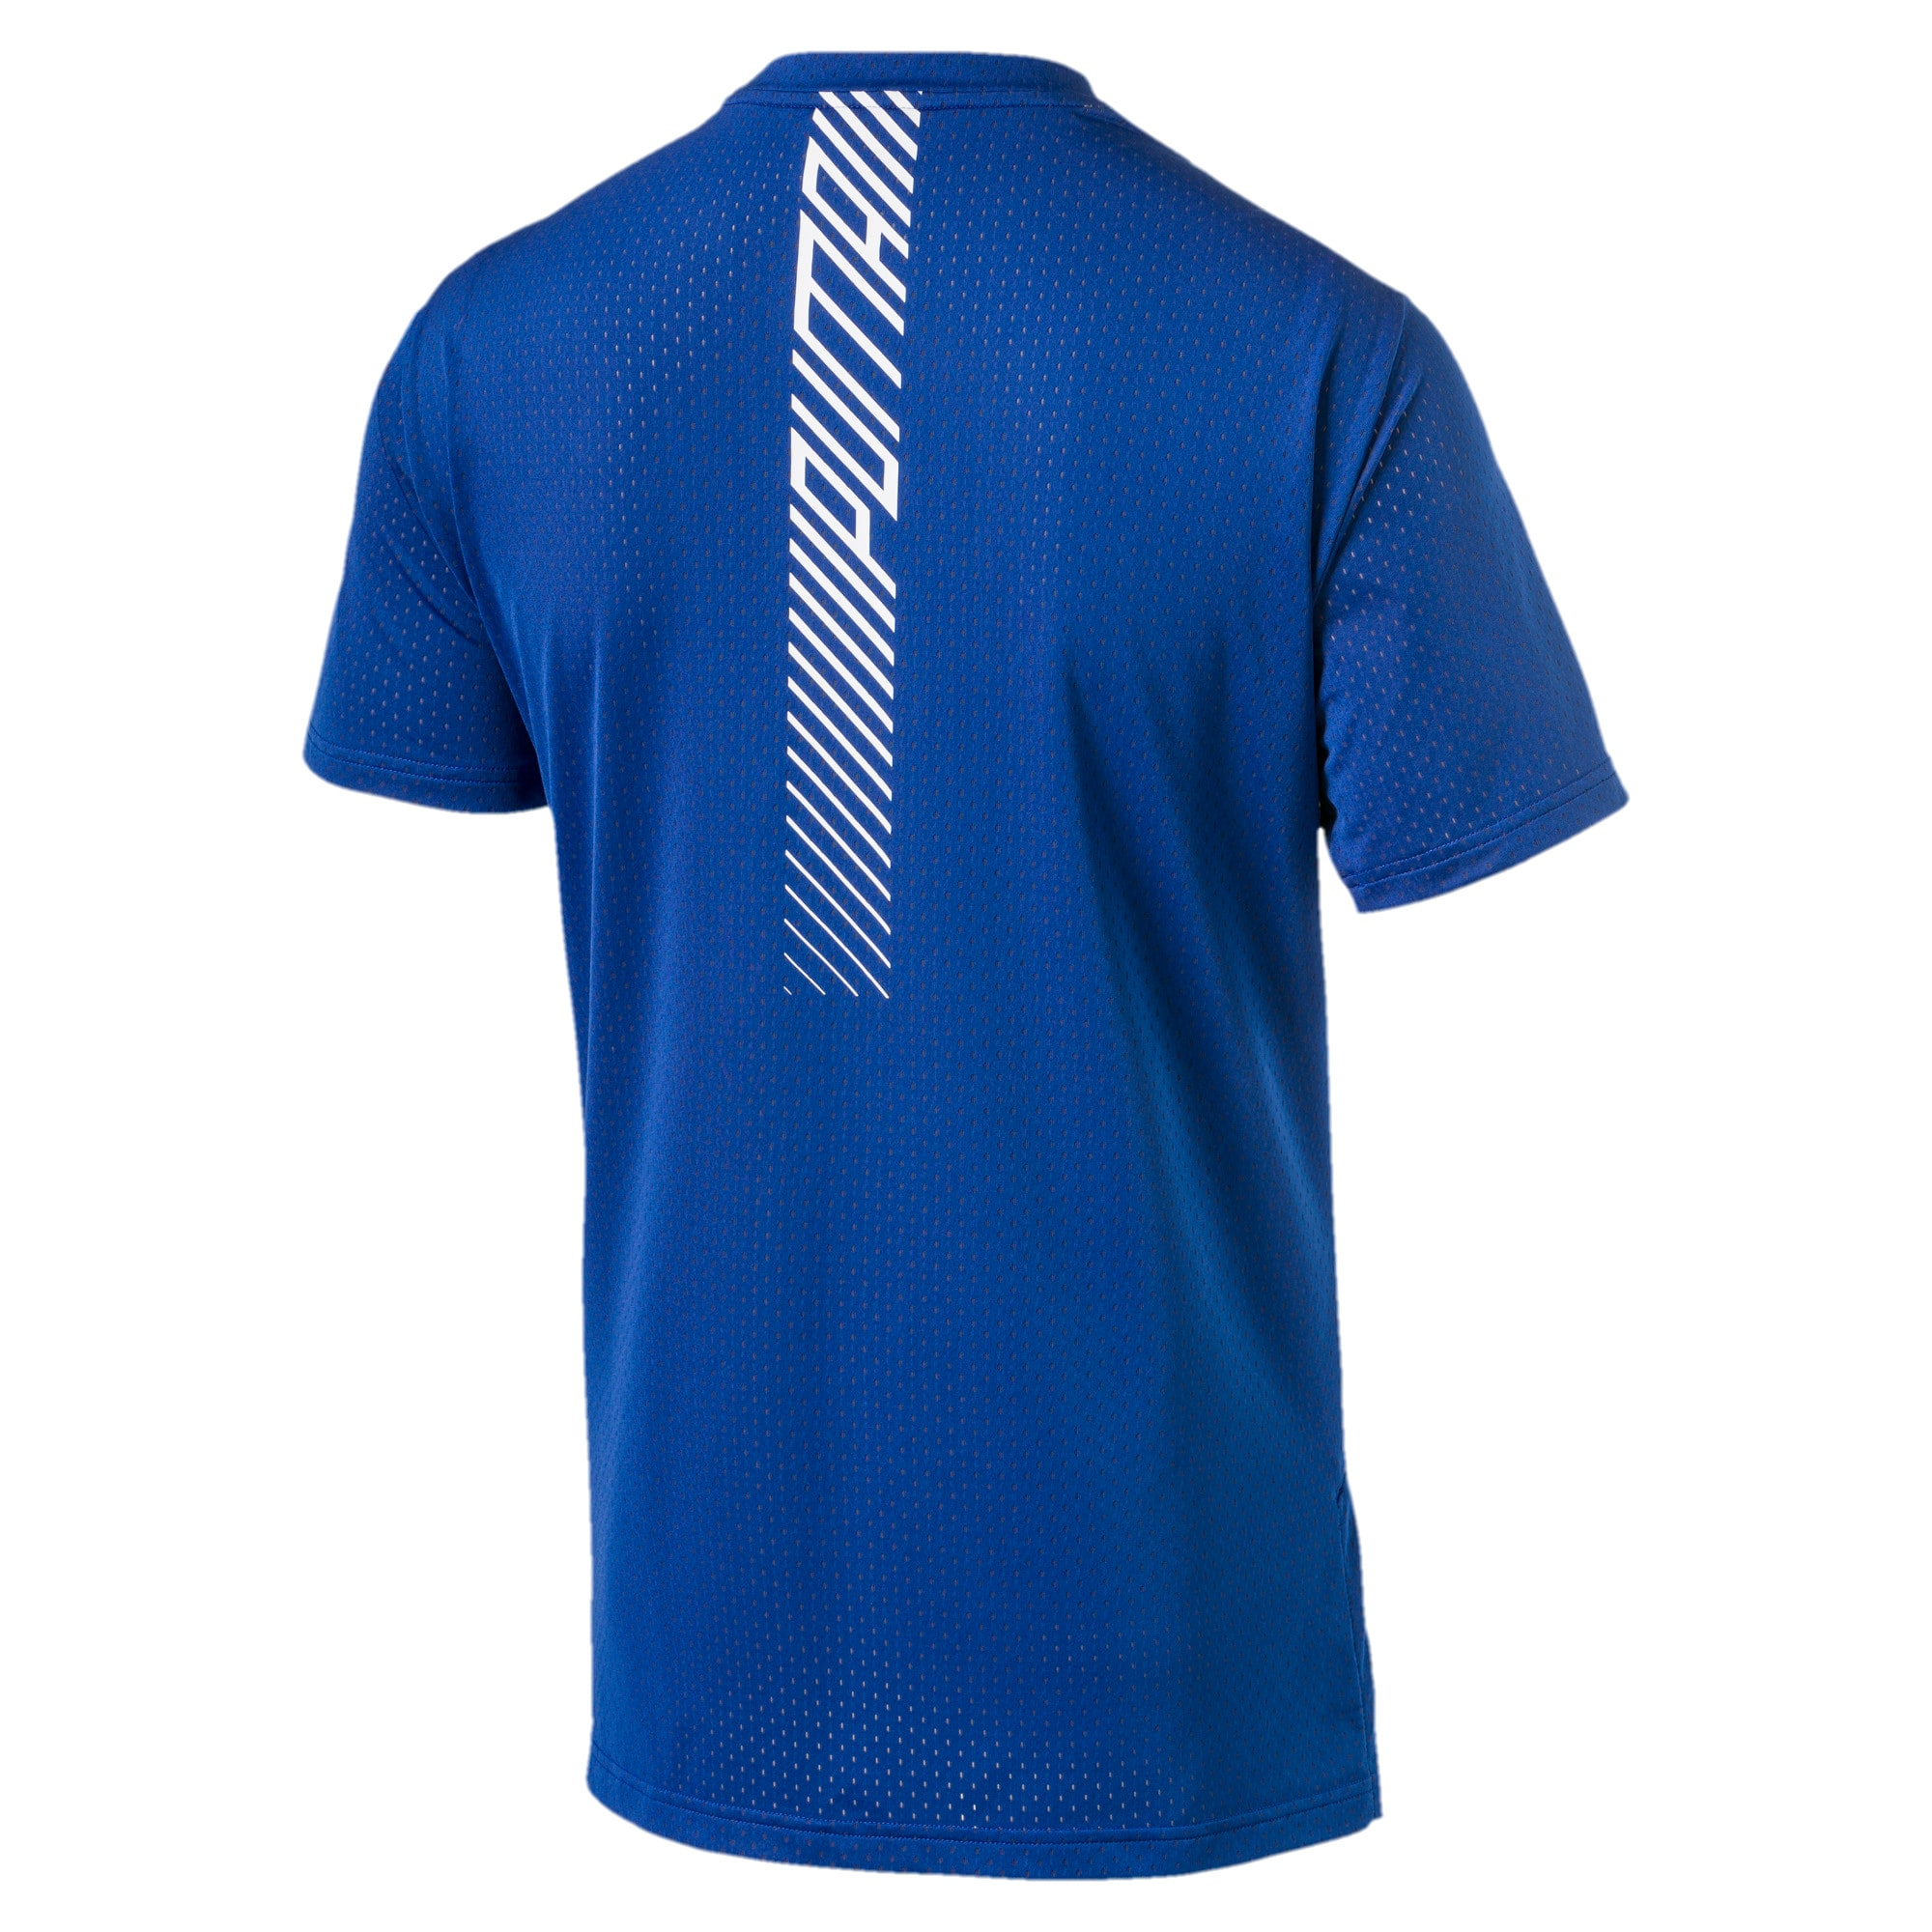 A.C.E. Men's Training Tee, Surf The Web, large